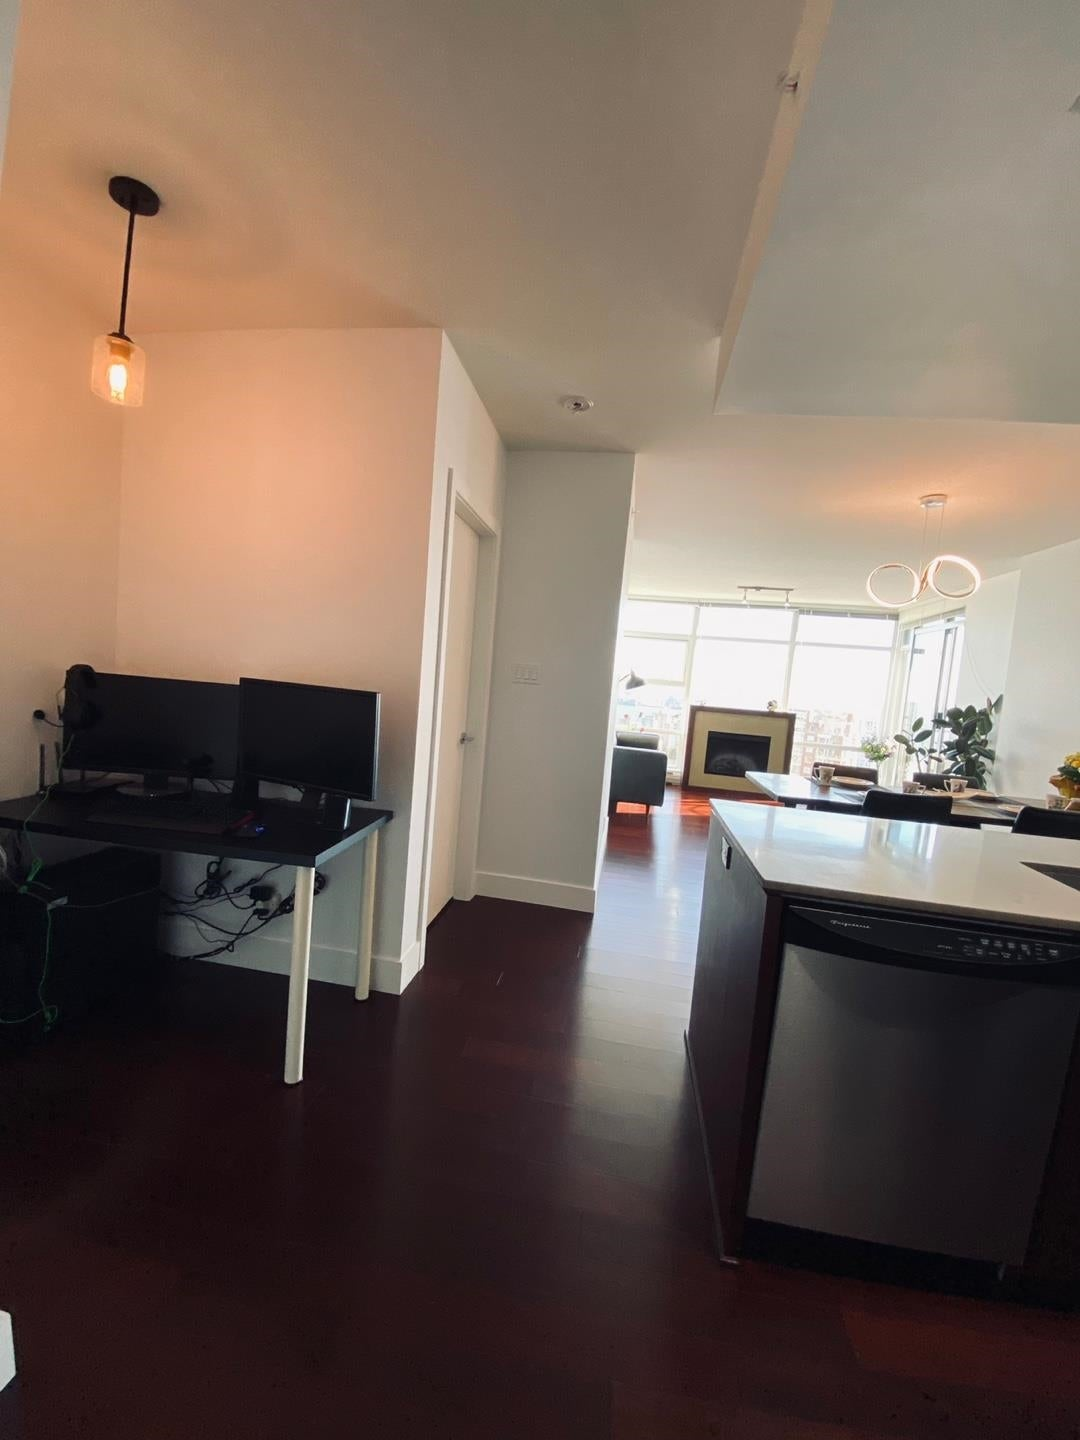 1505 158 W 13TH STREET - Central Lonsdale Apartment/Condo for sale, 2 Bedrooms (R2616868) - #11